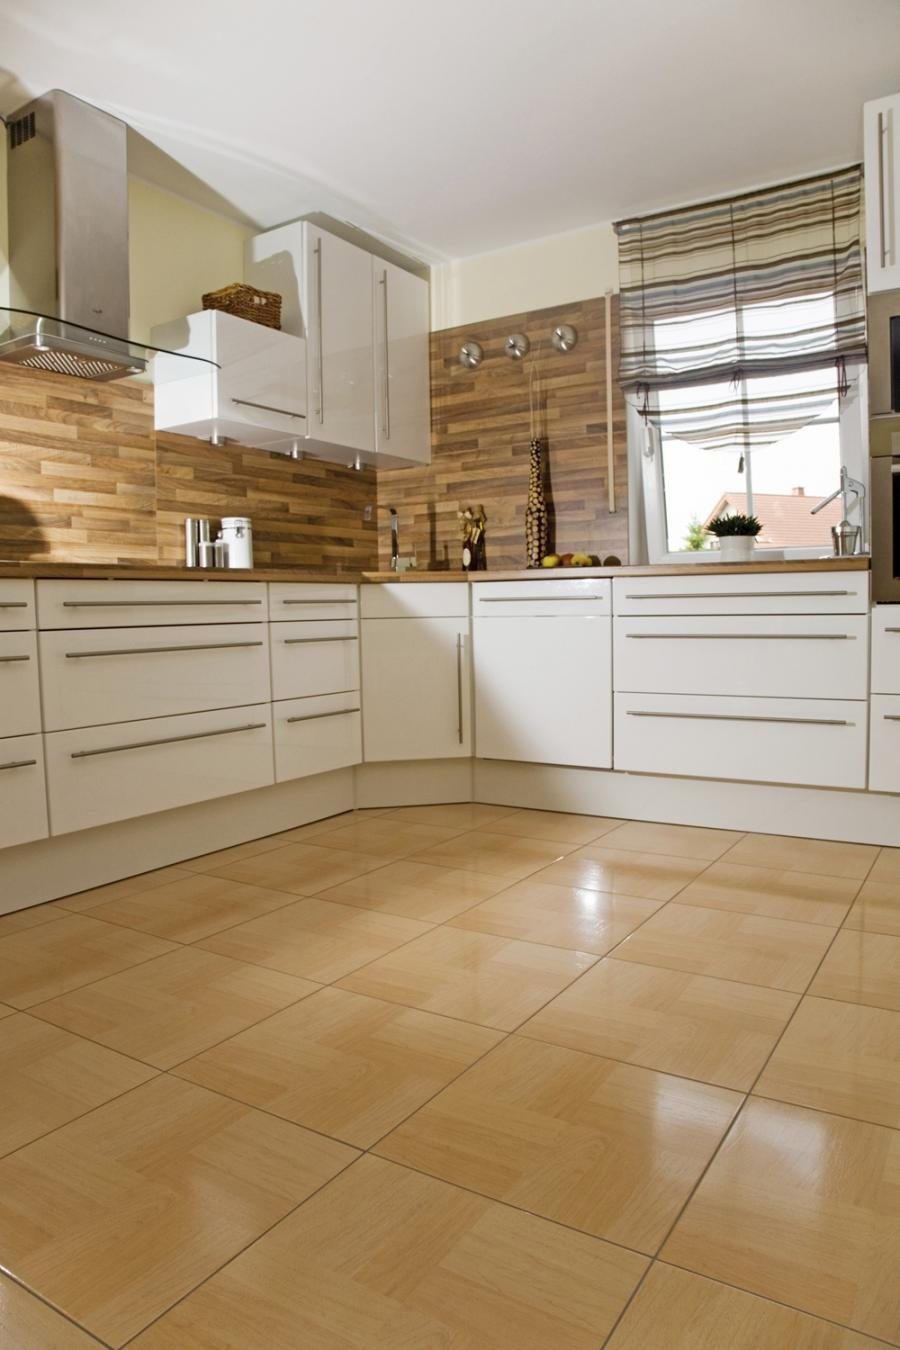 Kitchen ceramic tile floor photos for Ceramic tiles for kitchen floor ideas